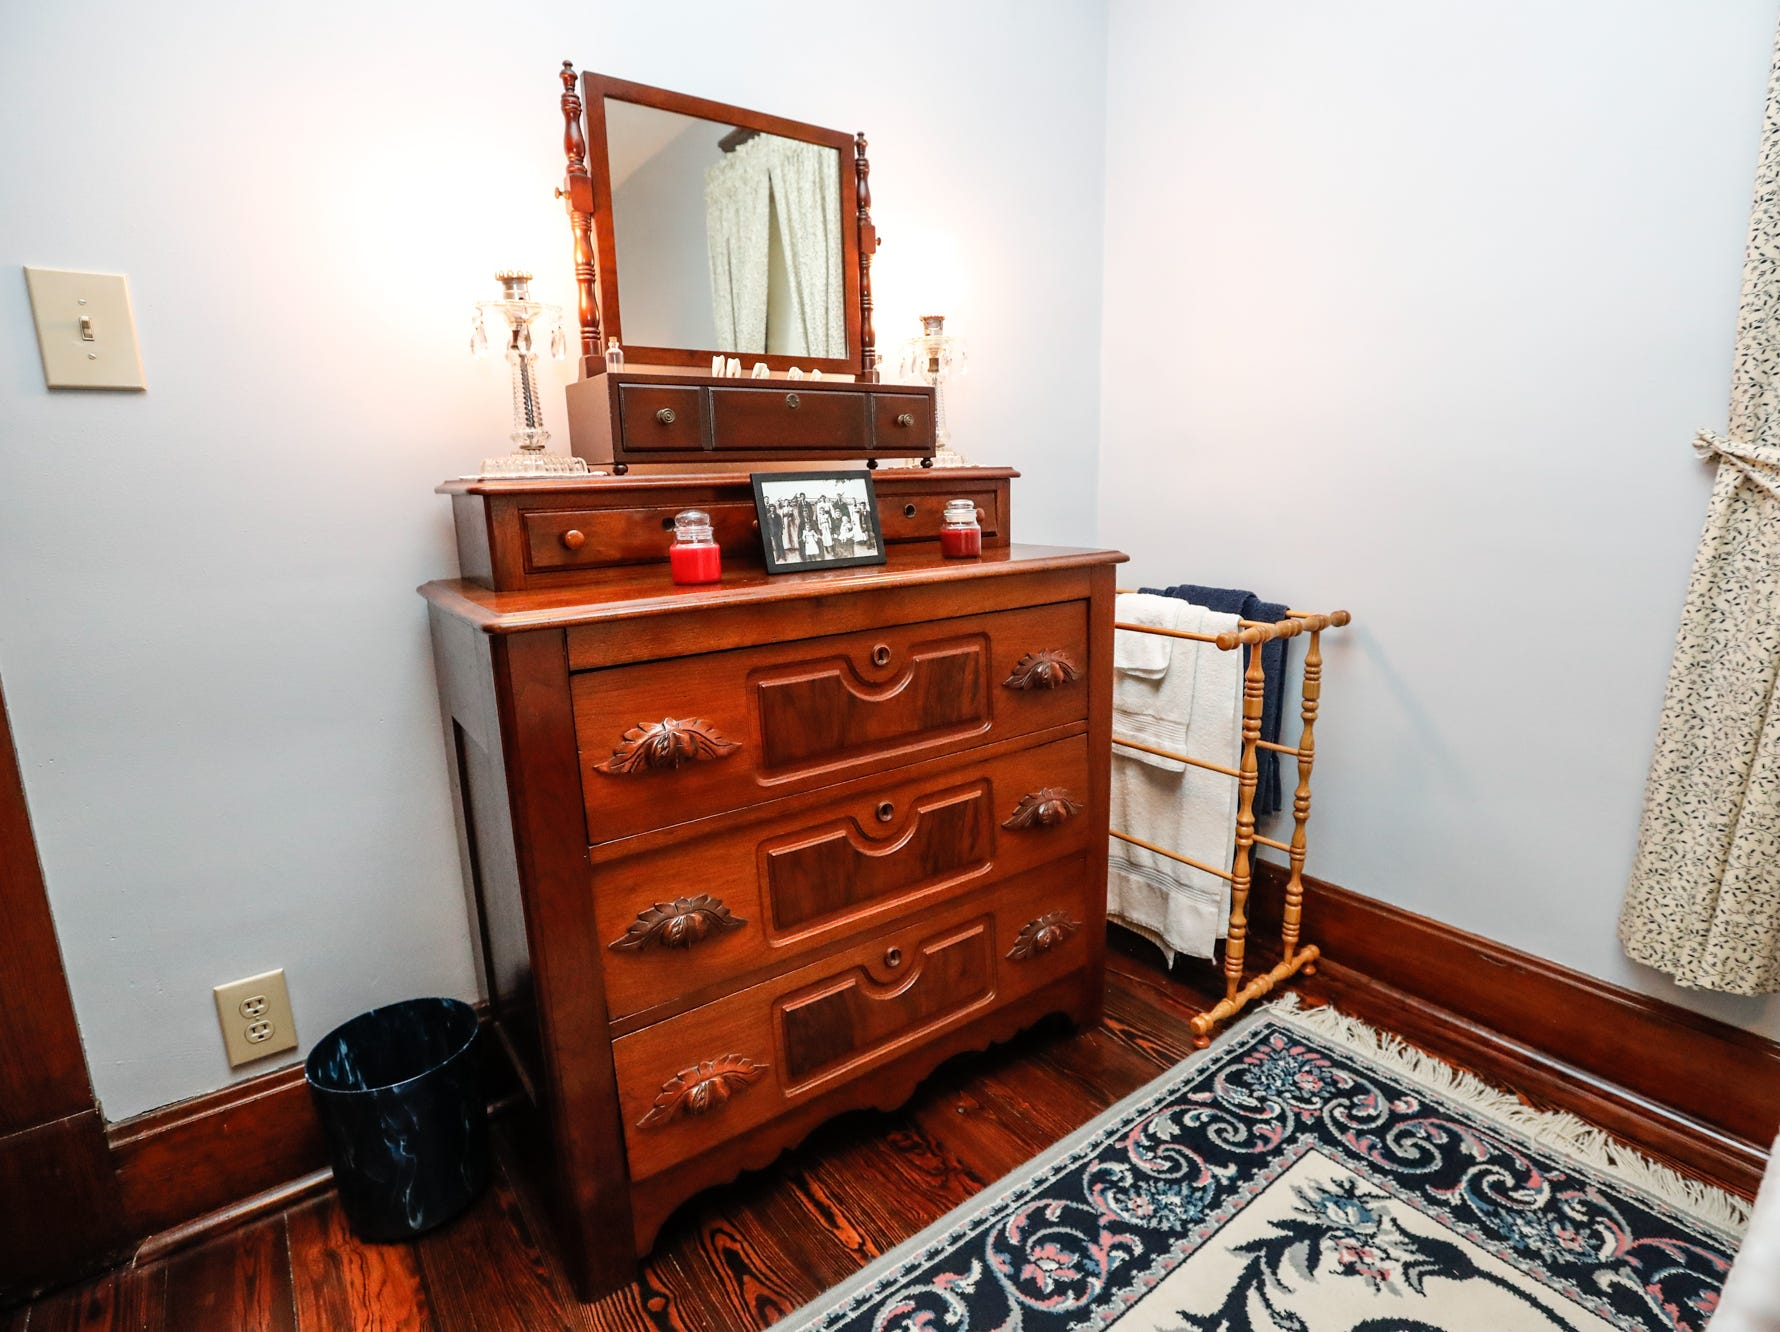 A Civil War era chest of drawers passed down through homeowner Ruth Schwartz's family decorates the 1903 home belonging to Ruth and Russell Schwartz, during the Carmel Clay Historical Society Holiday Home Tour in Carmel Ind. on Saturday, Dec.1, 2018.